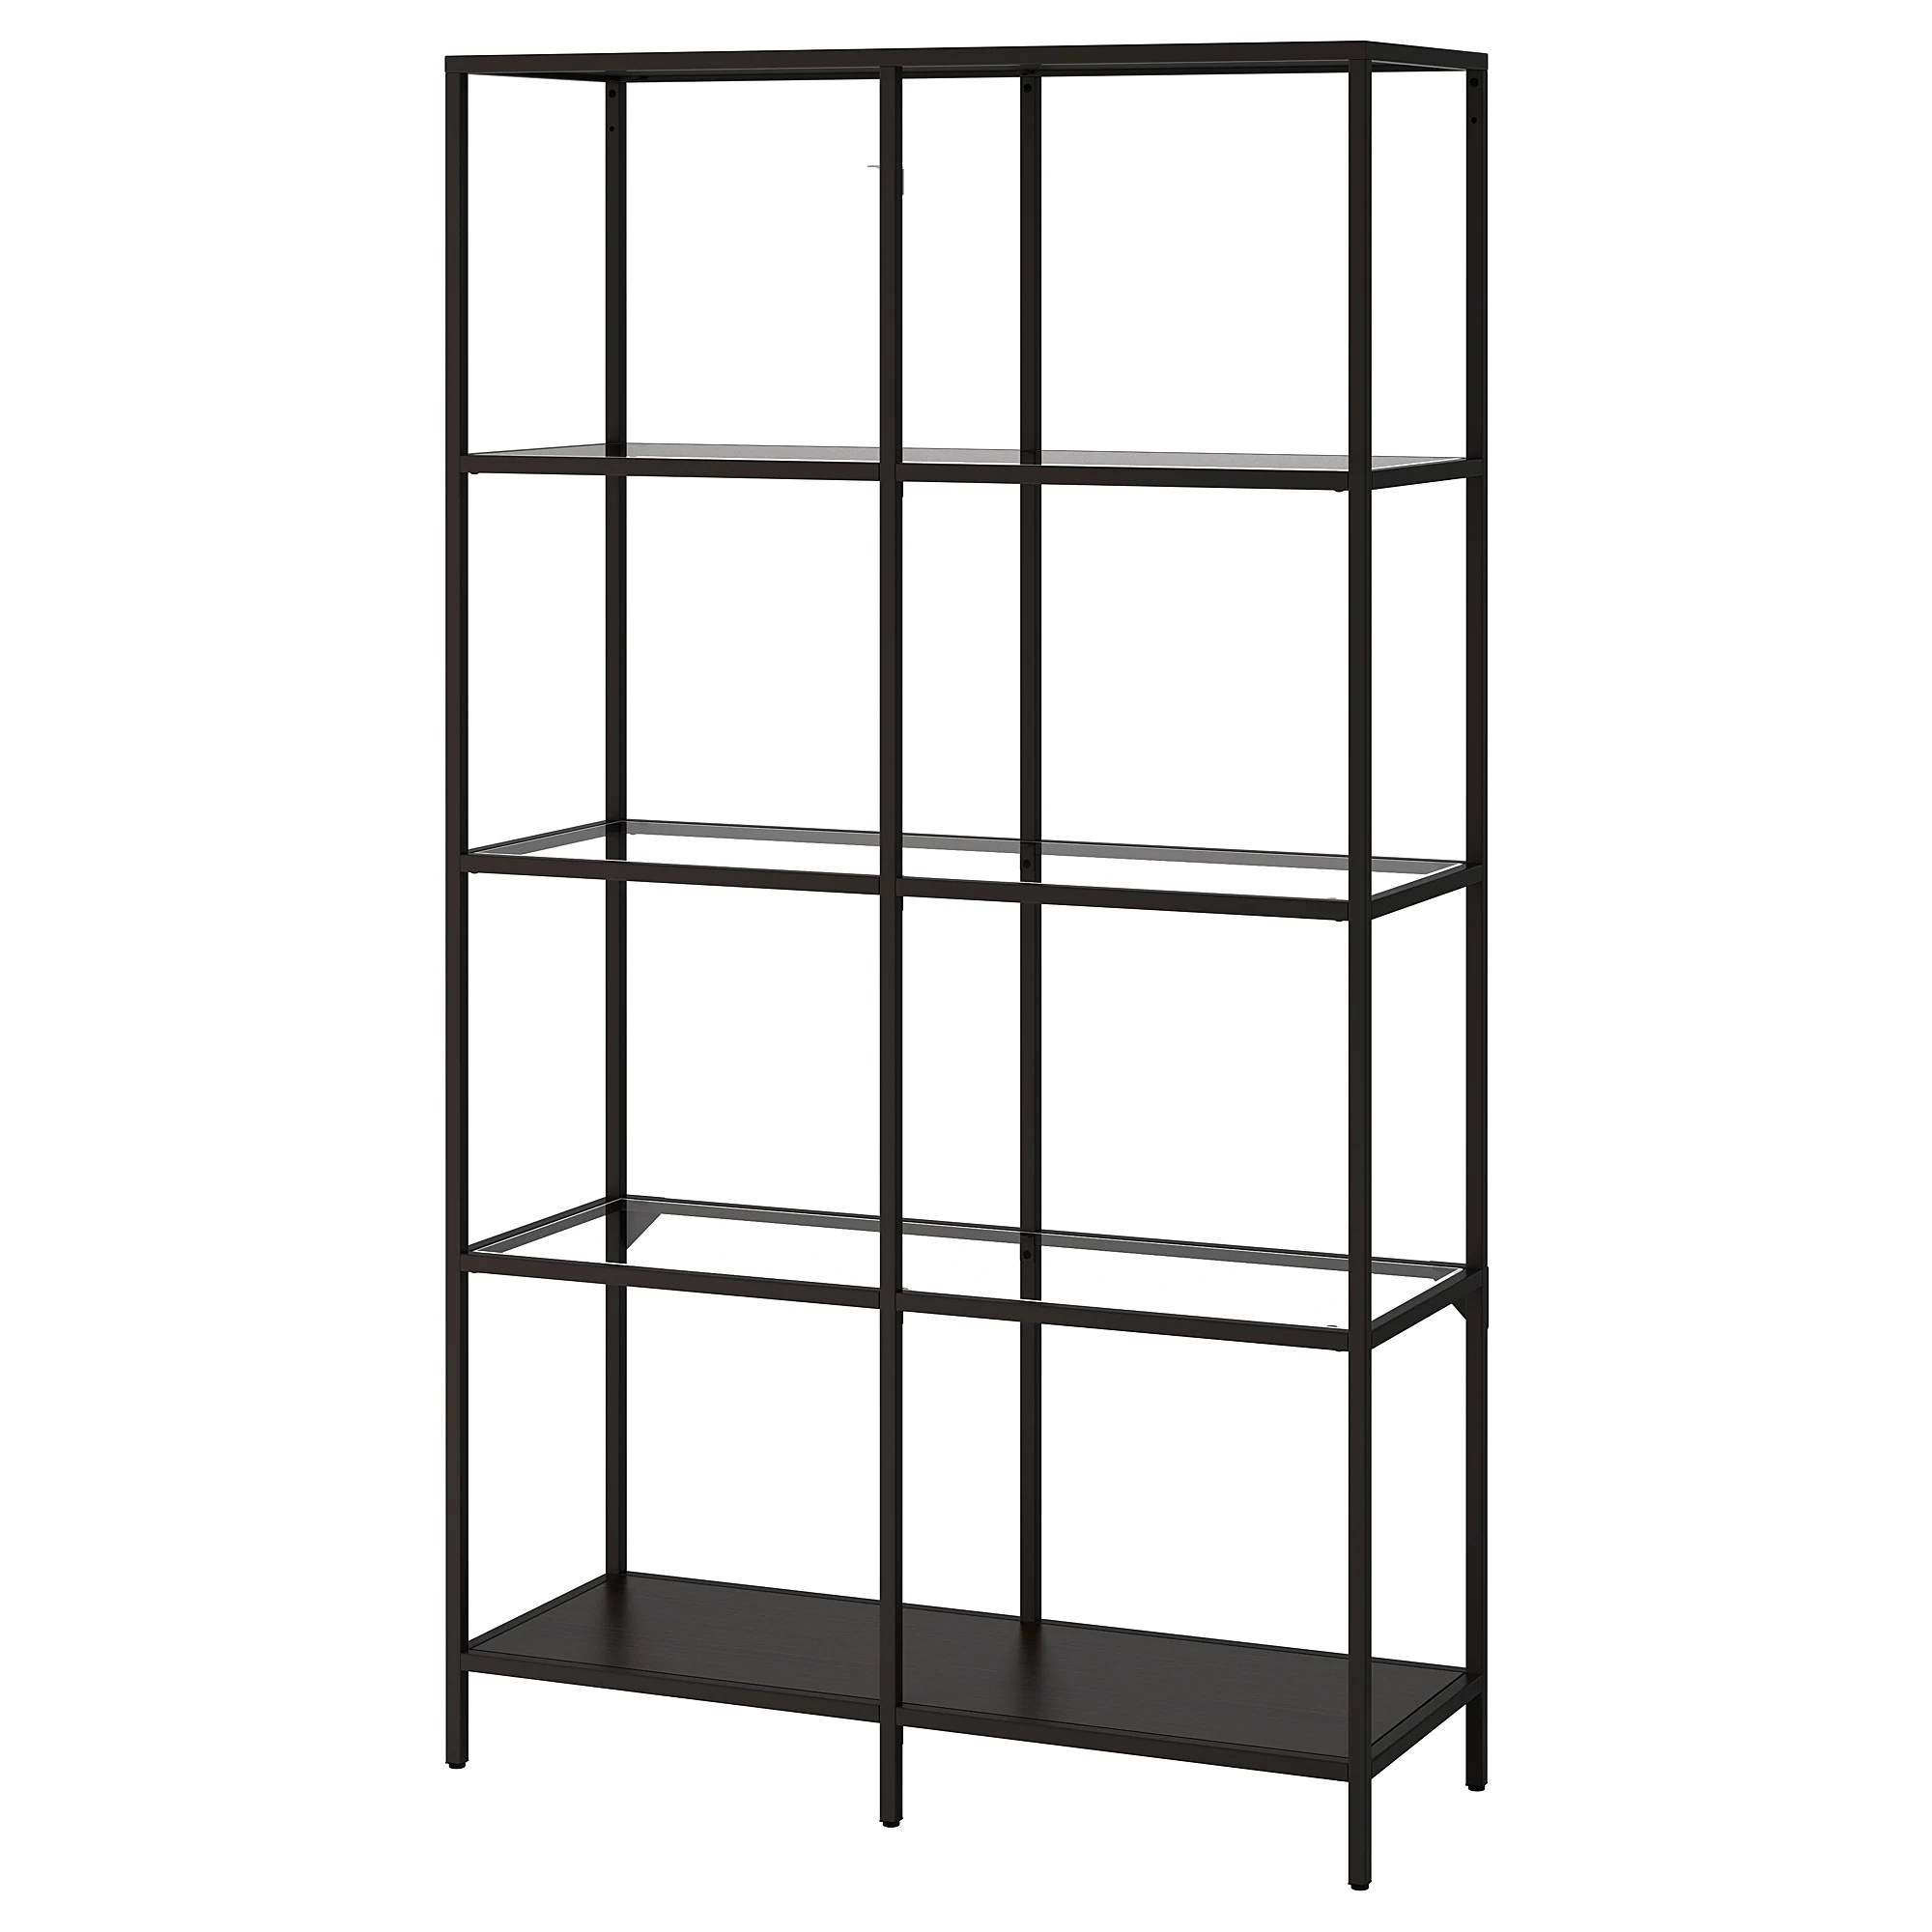 Metal Shelving VittsjÖ Shelf Unit Black Brown Glass